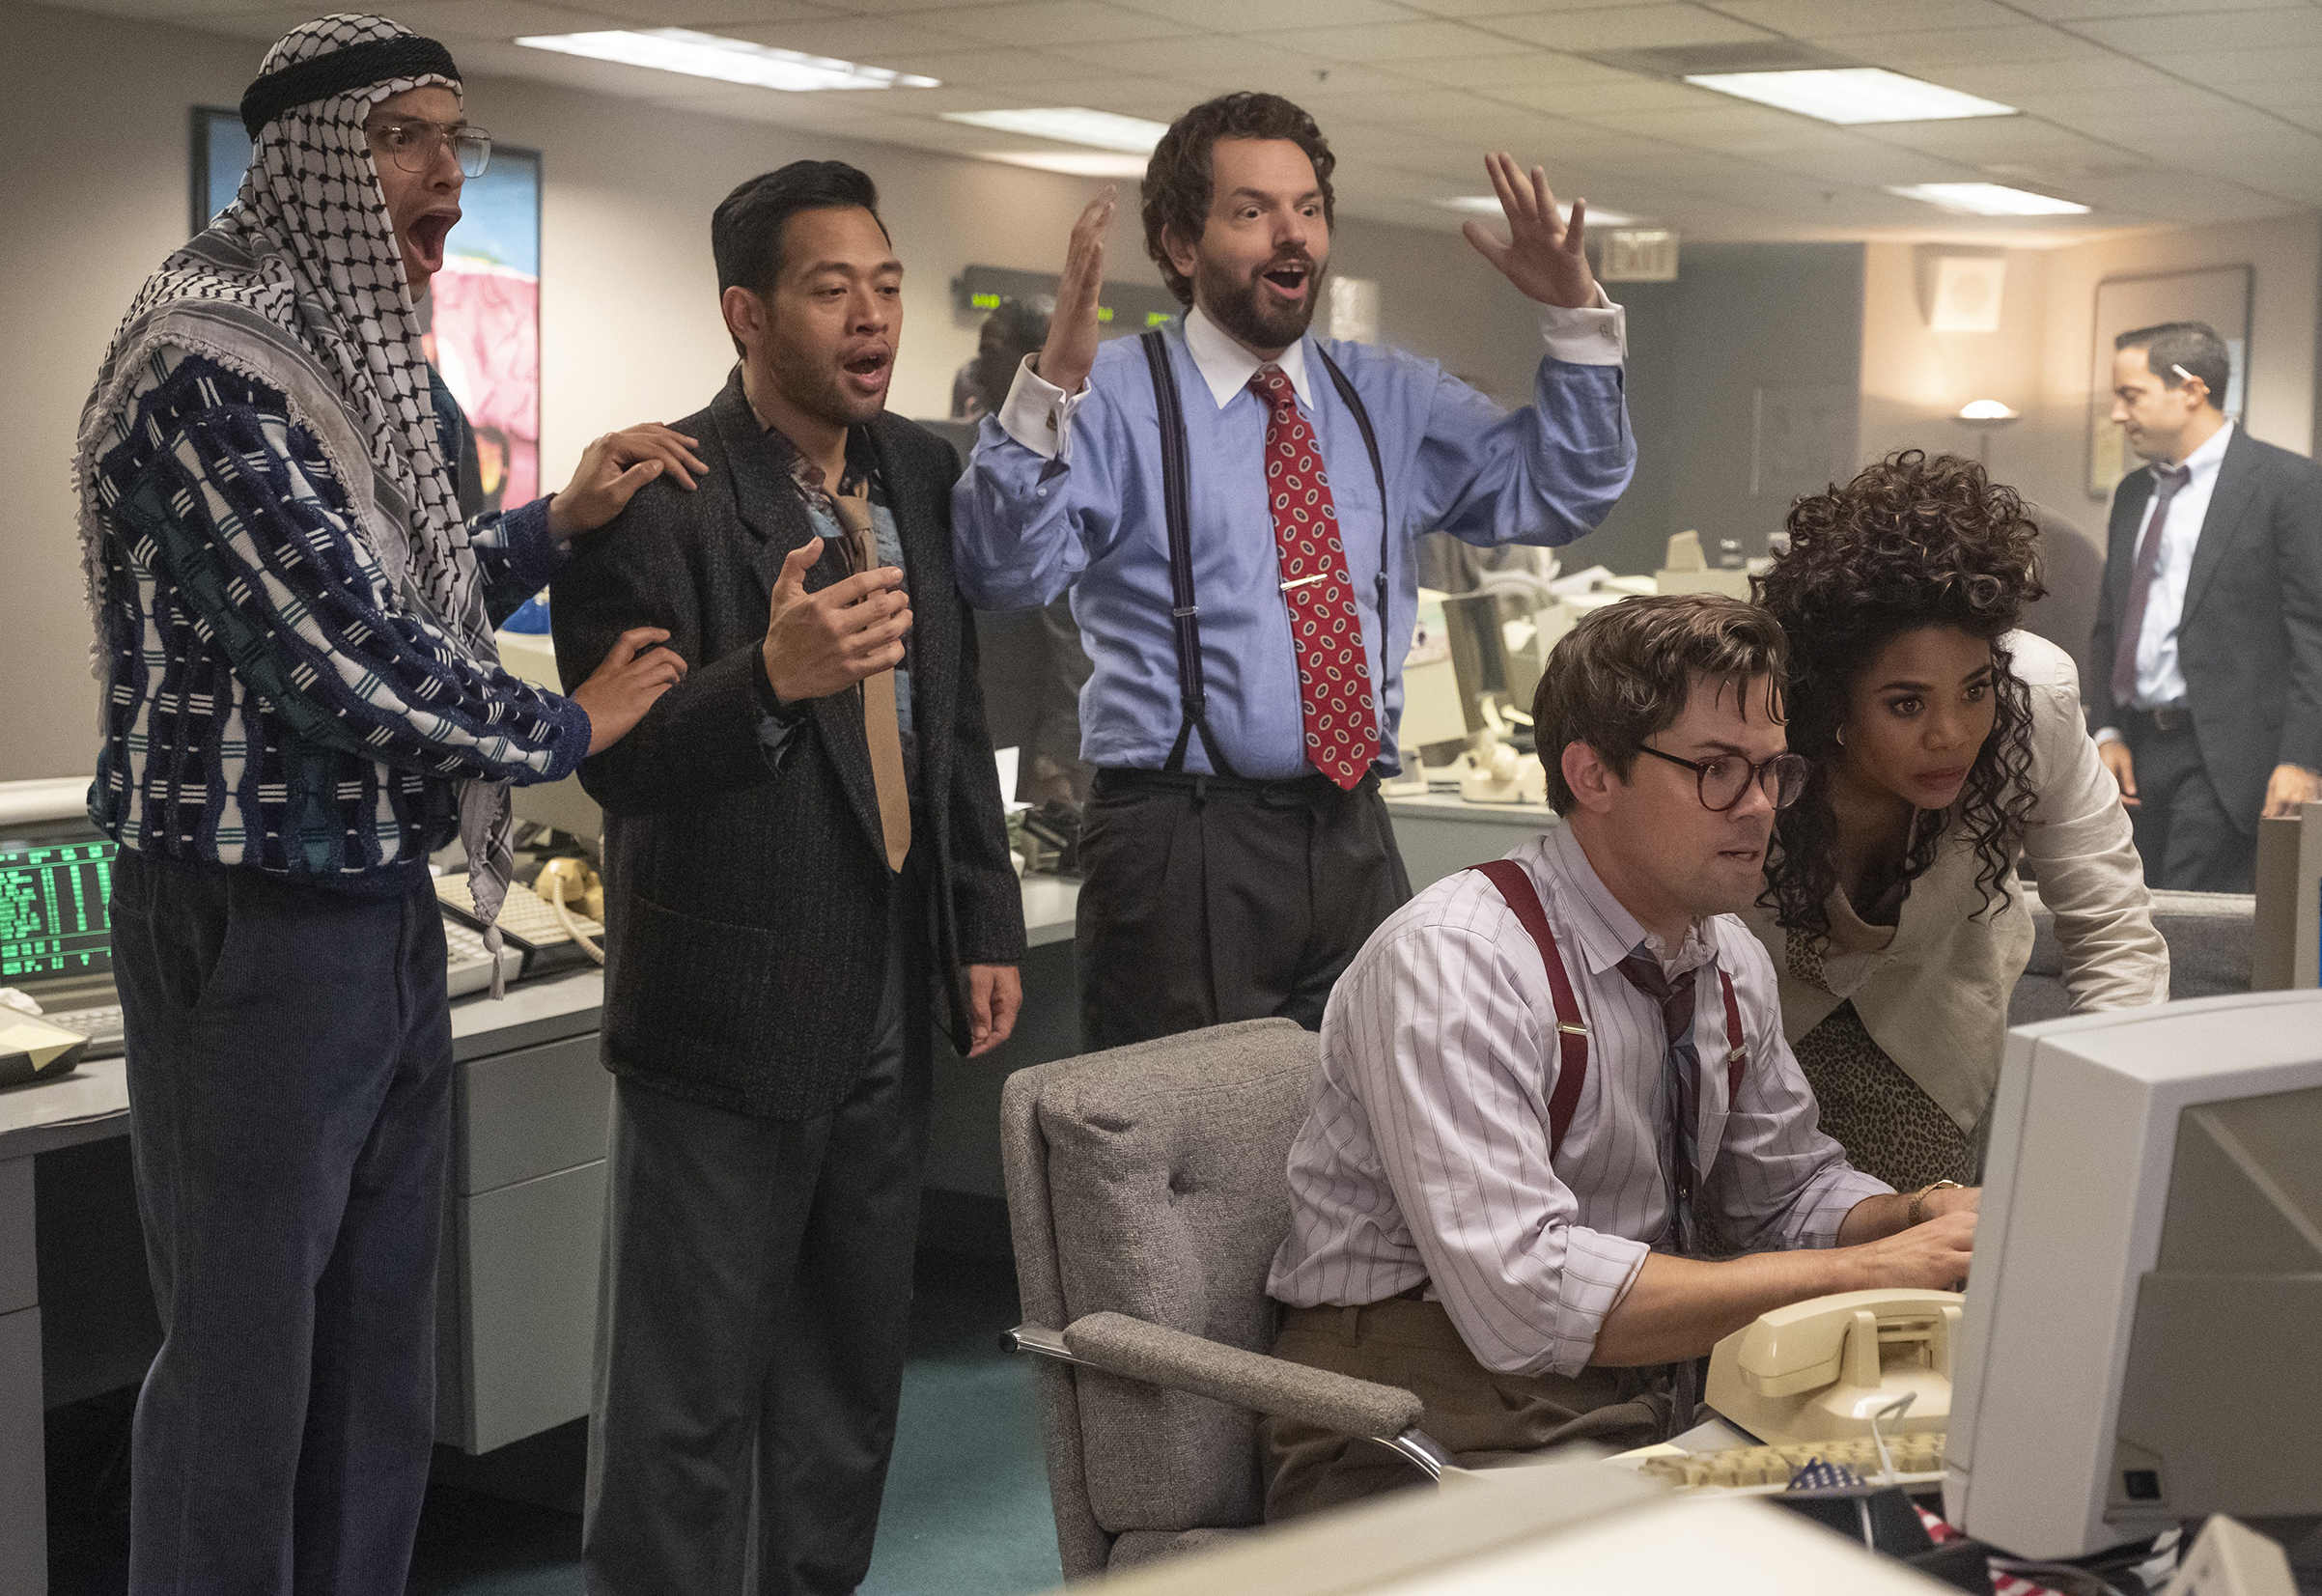 Black Monday leads a slate of new dark comedies convinced that greed isn't good